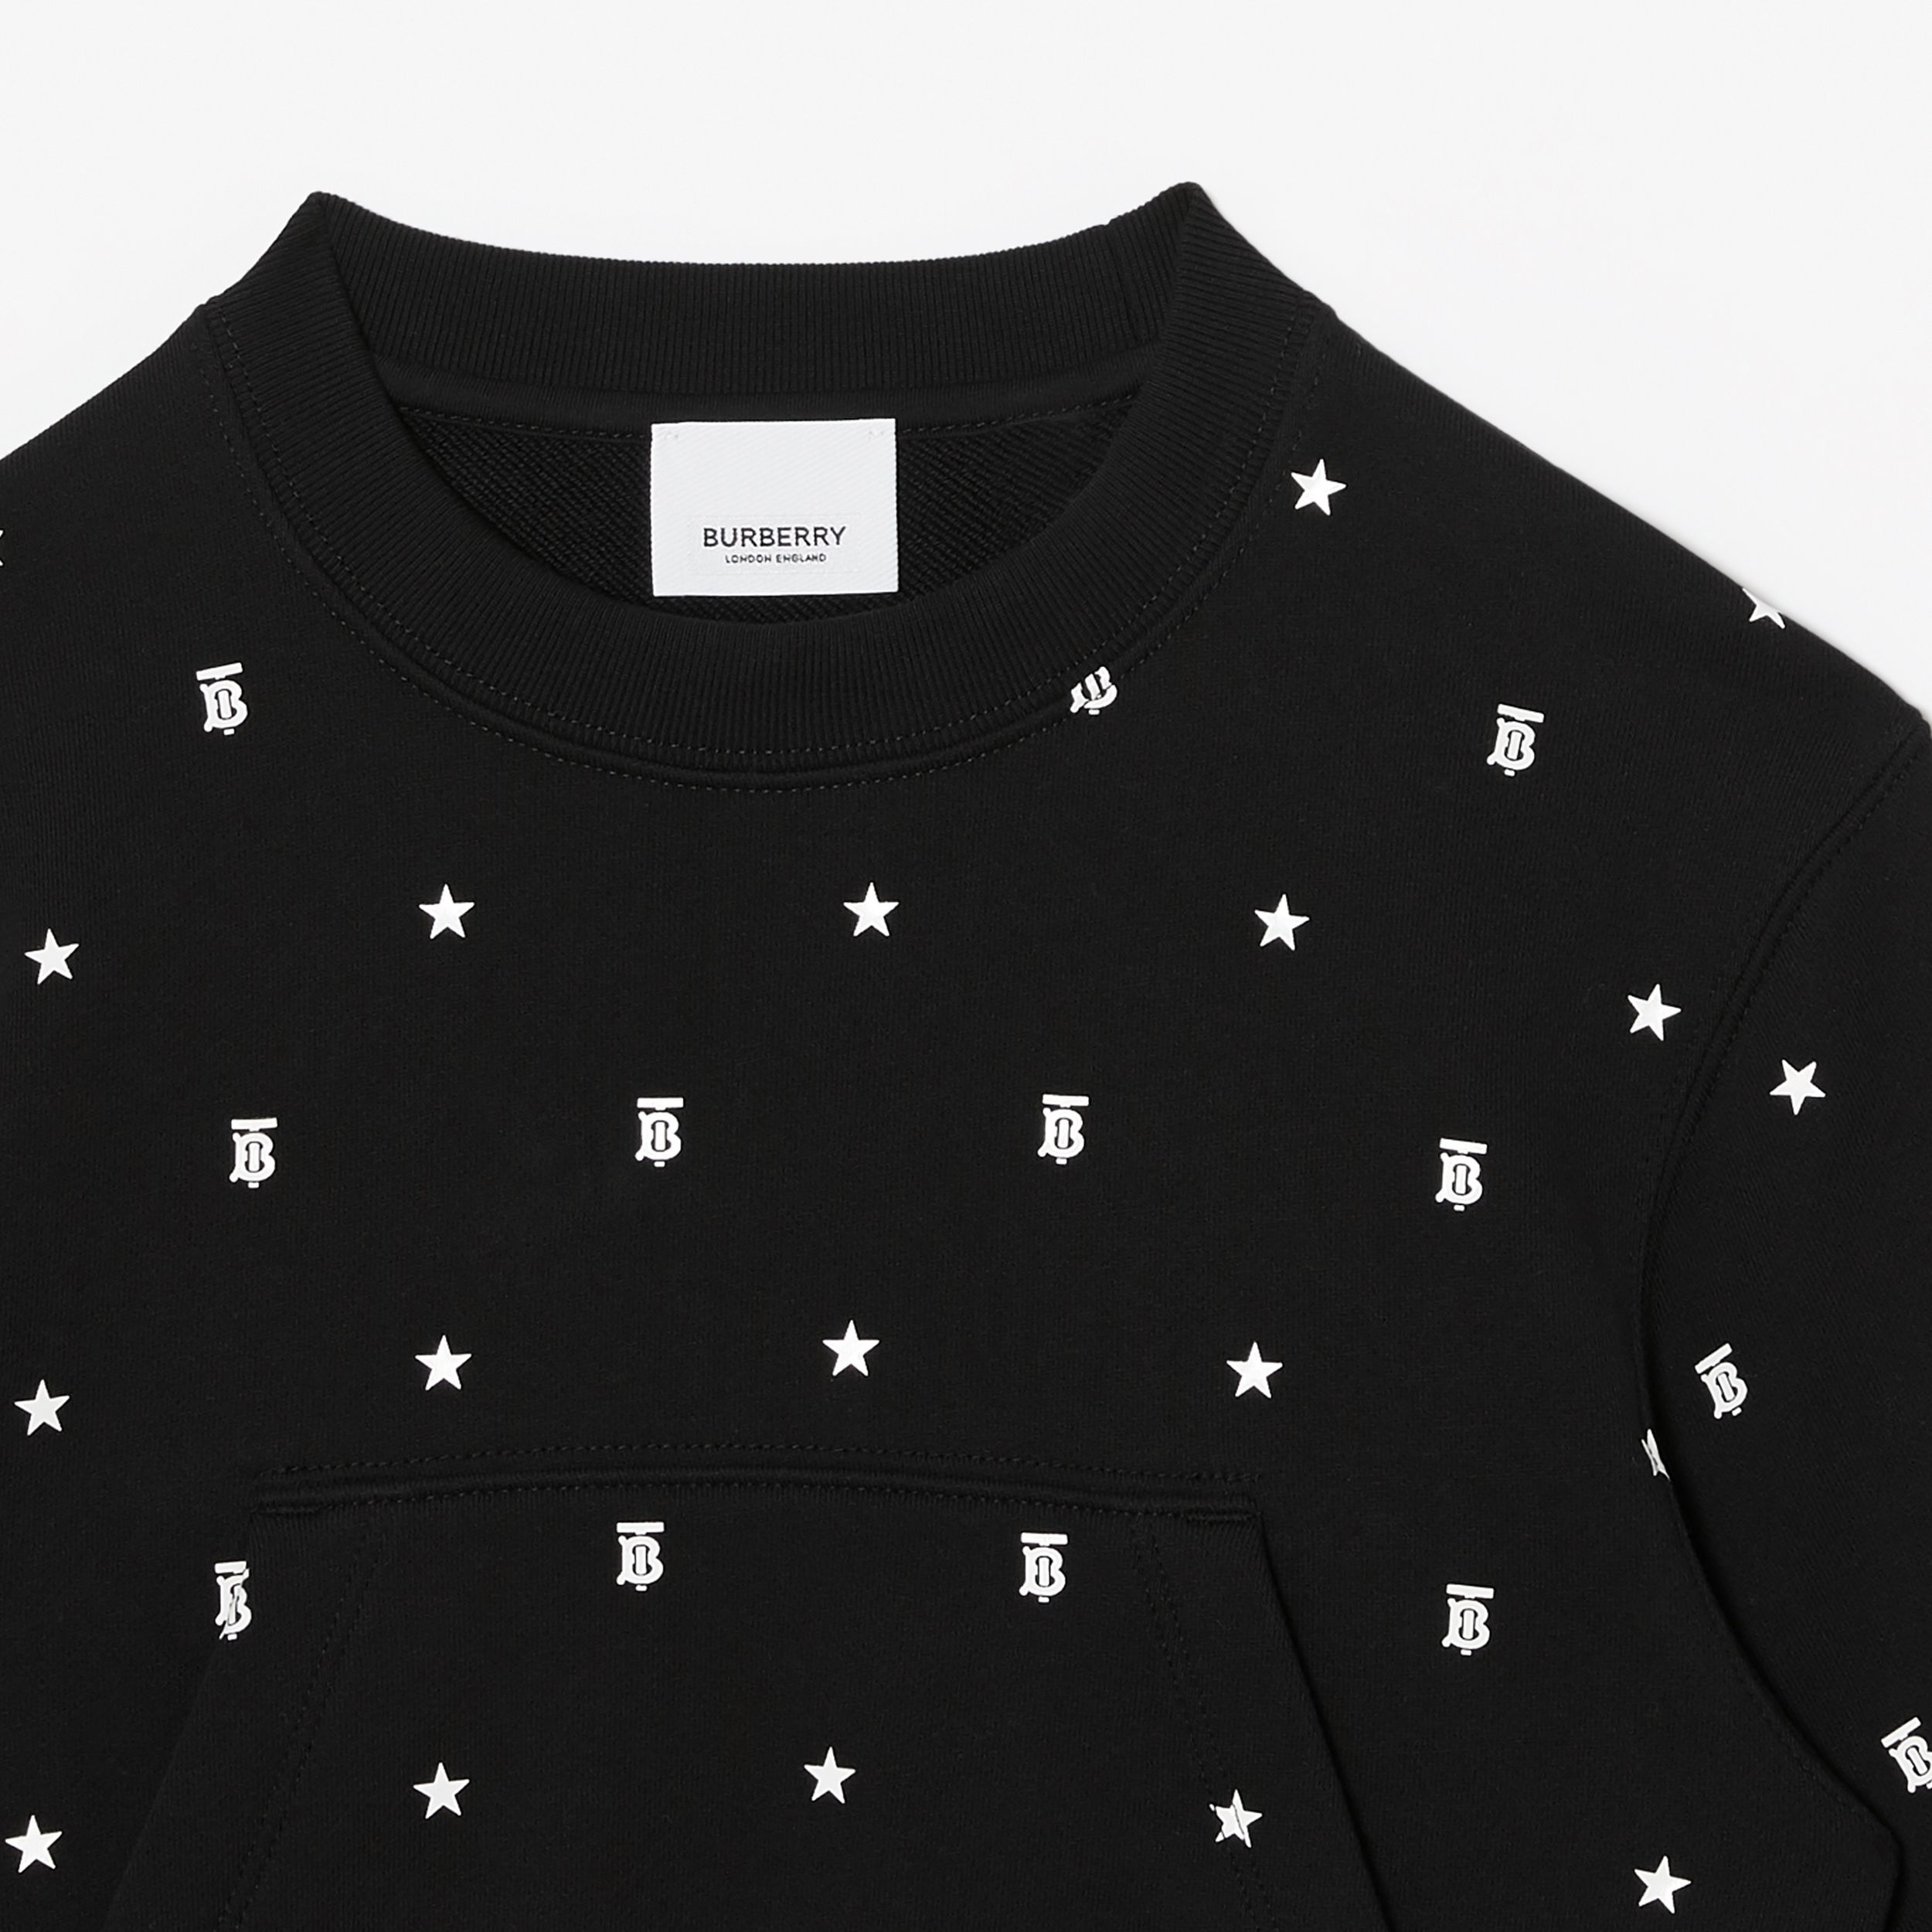 Star and Monogram Motif Cotton Sweatshirt in Black | Burberry - 4